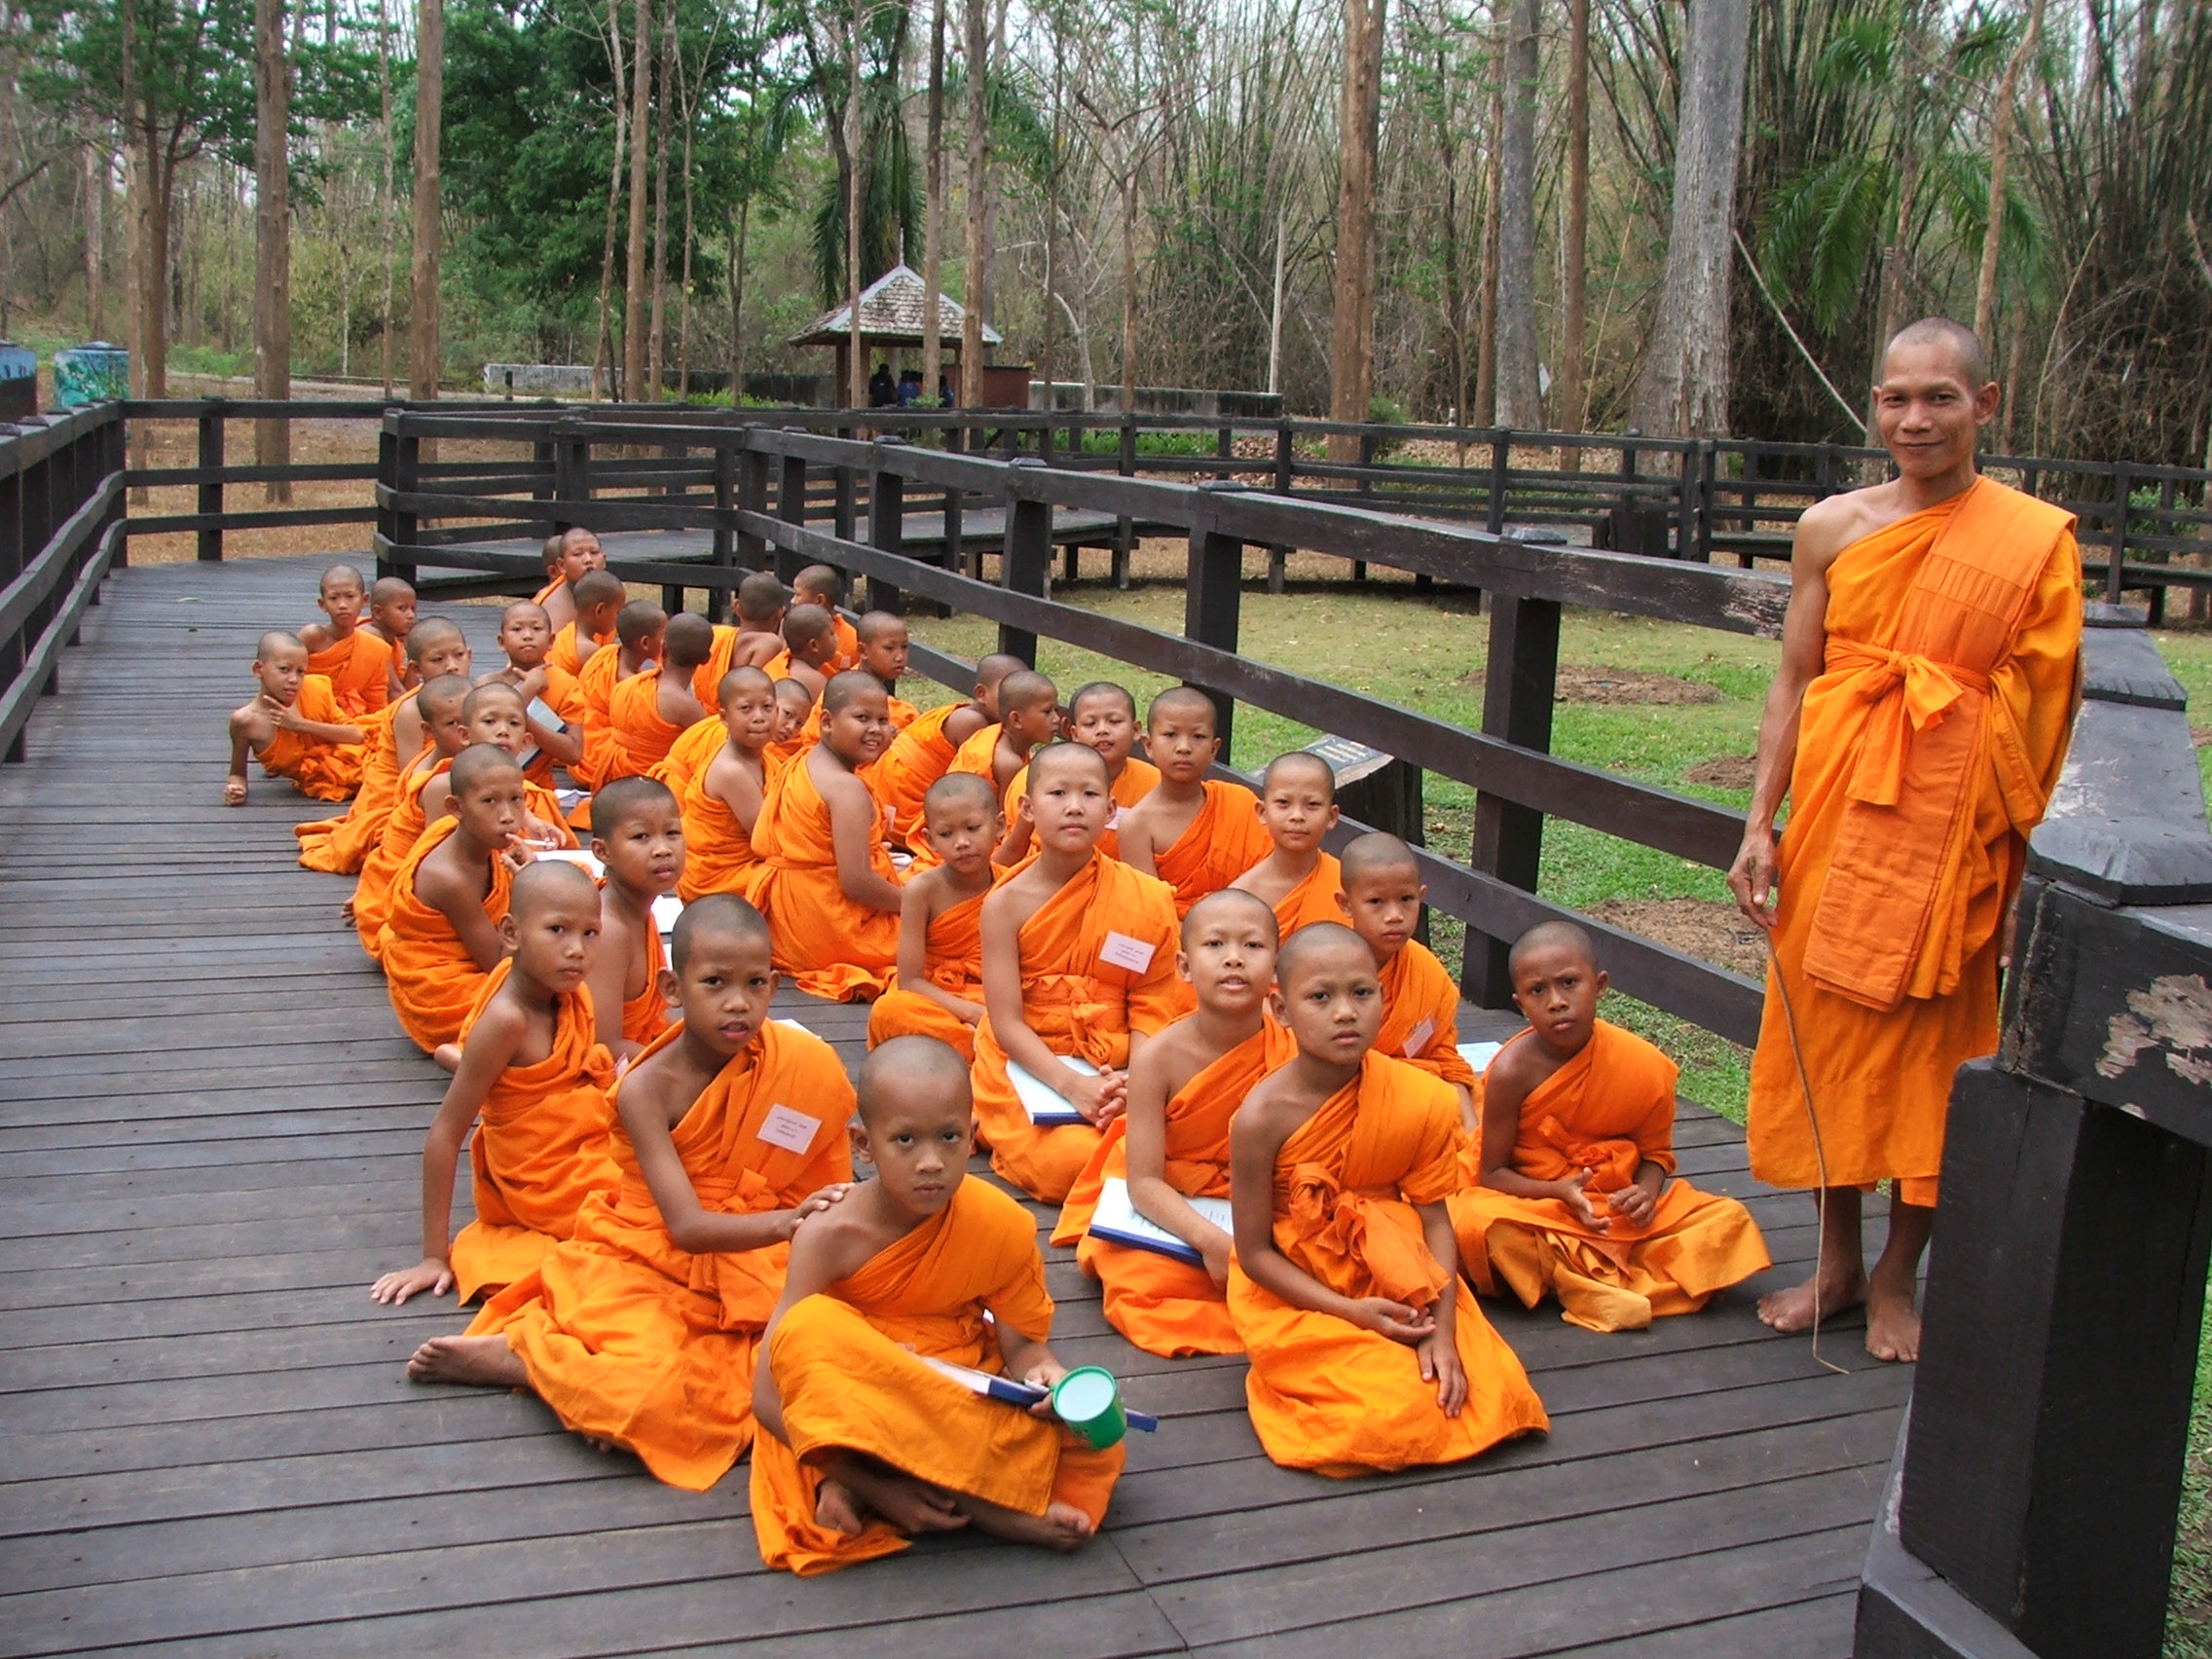 File:Novice in the Buddhist religion group.jpg - Wikipedia